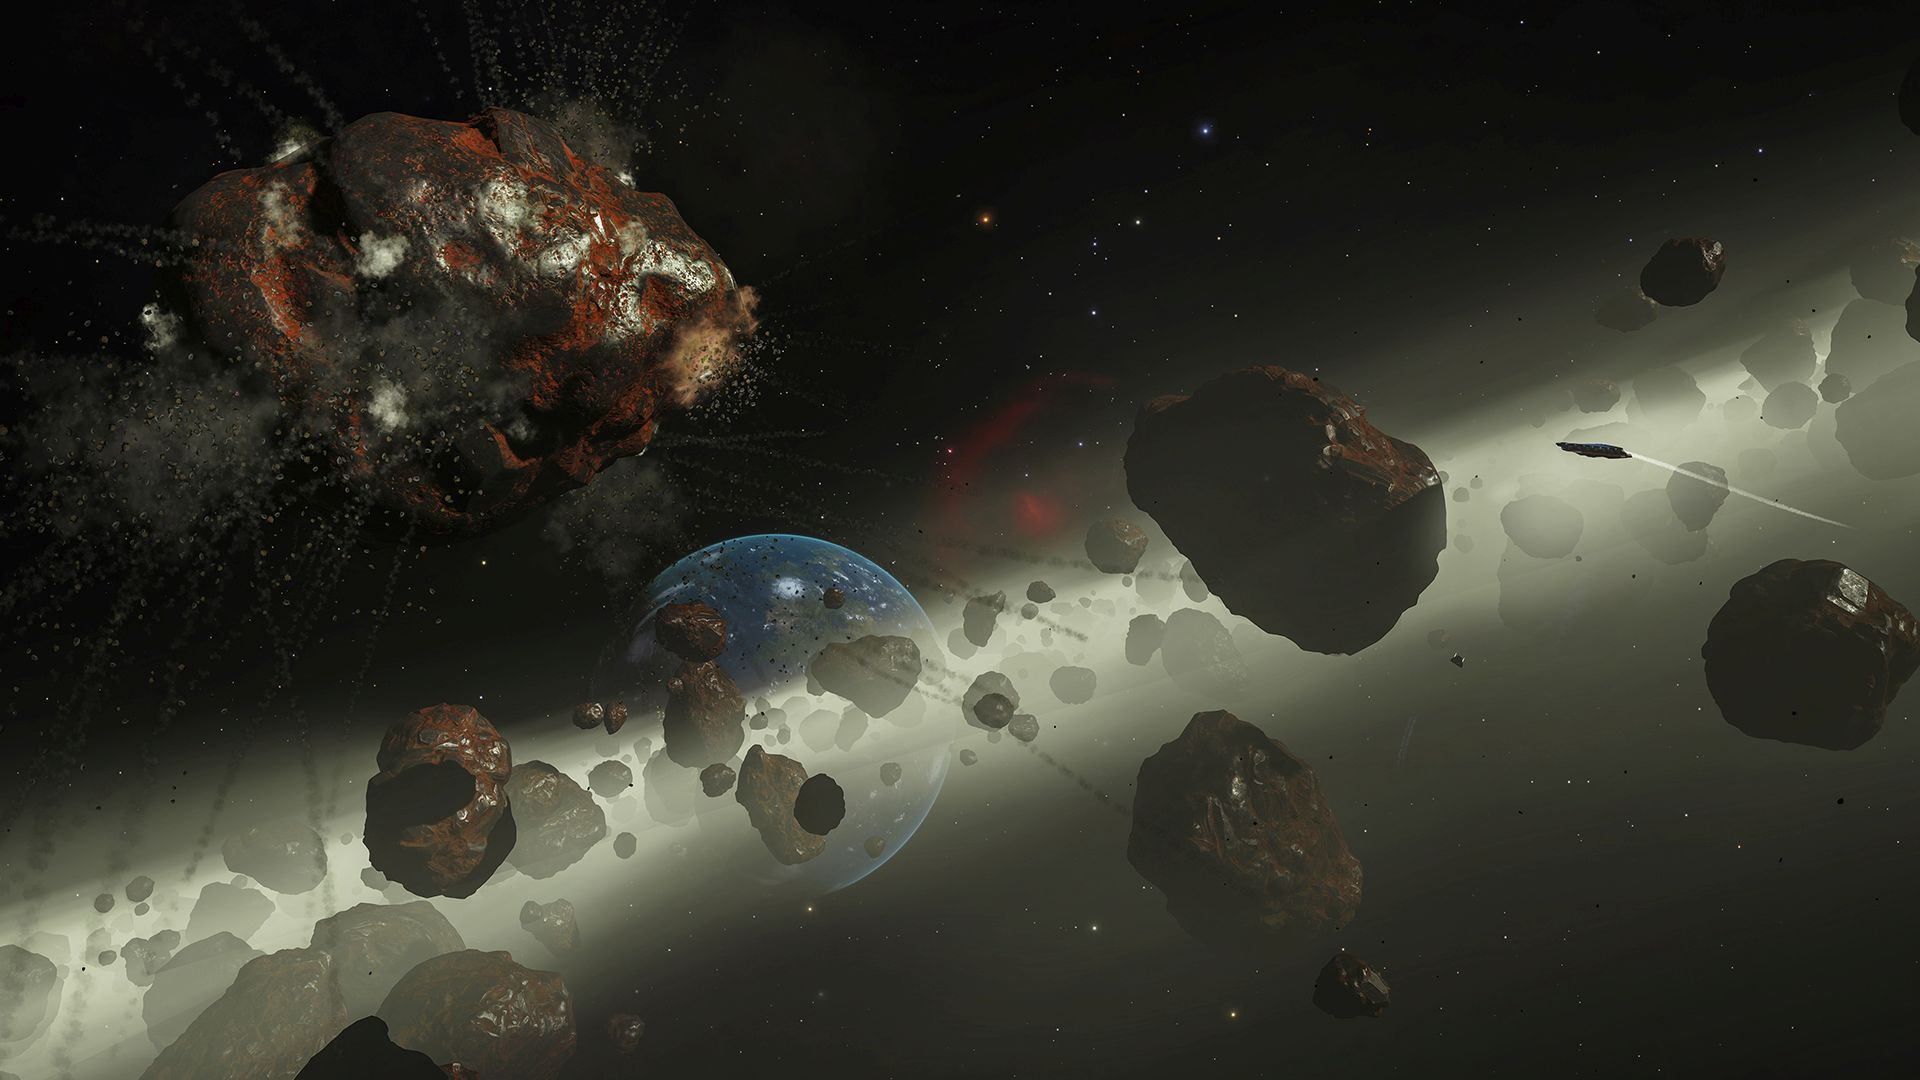 Elite Dangerous goes Armageddon to deliver on the danger and